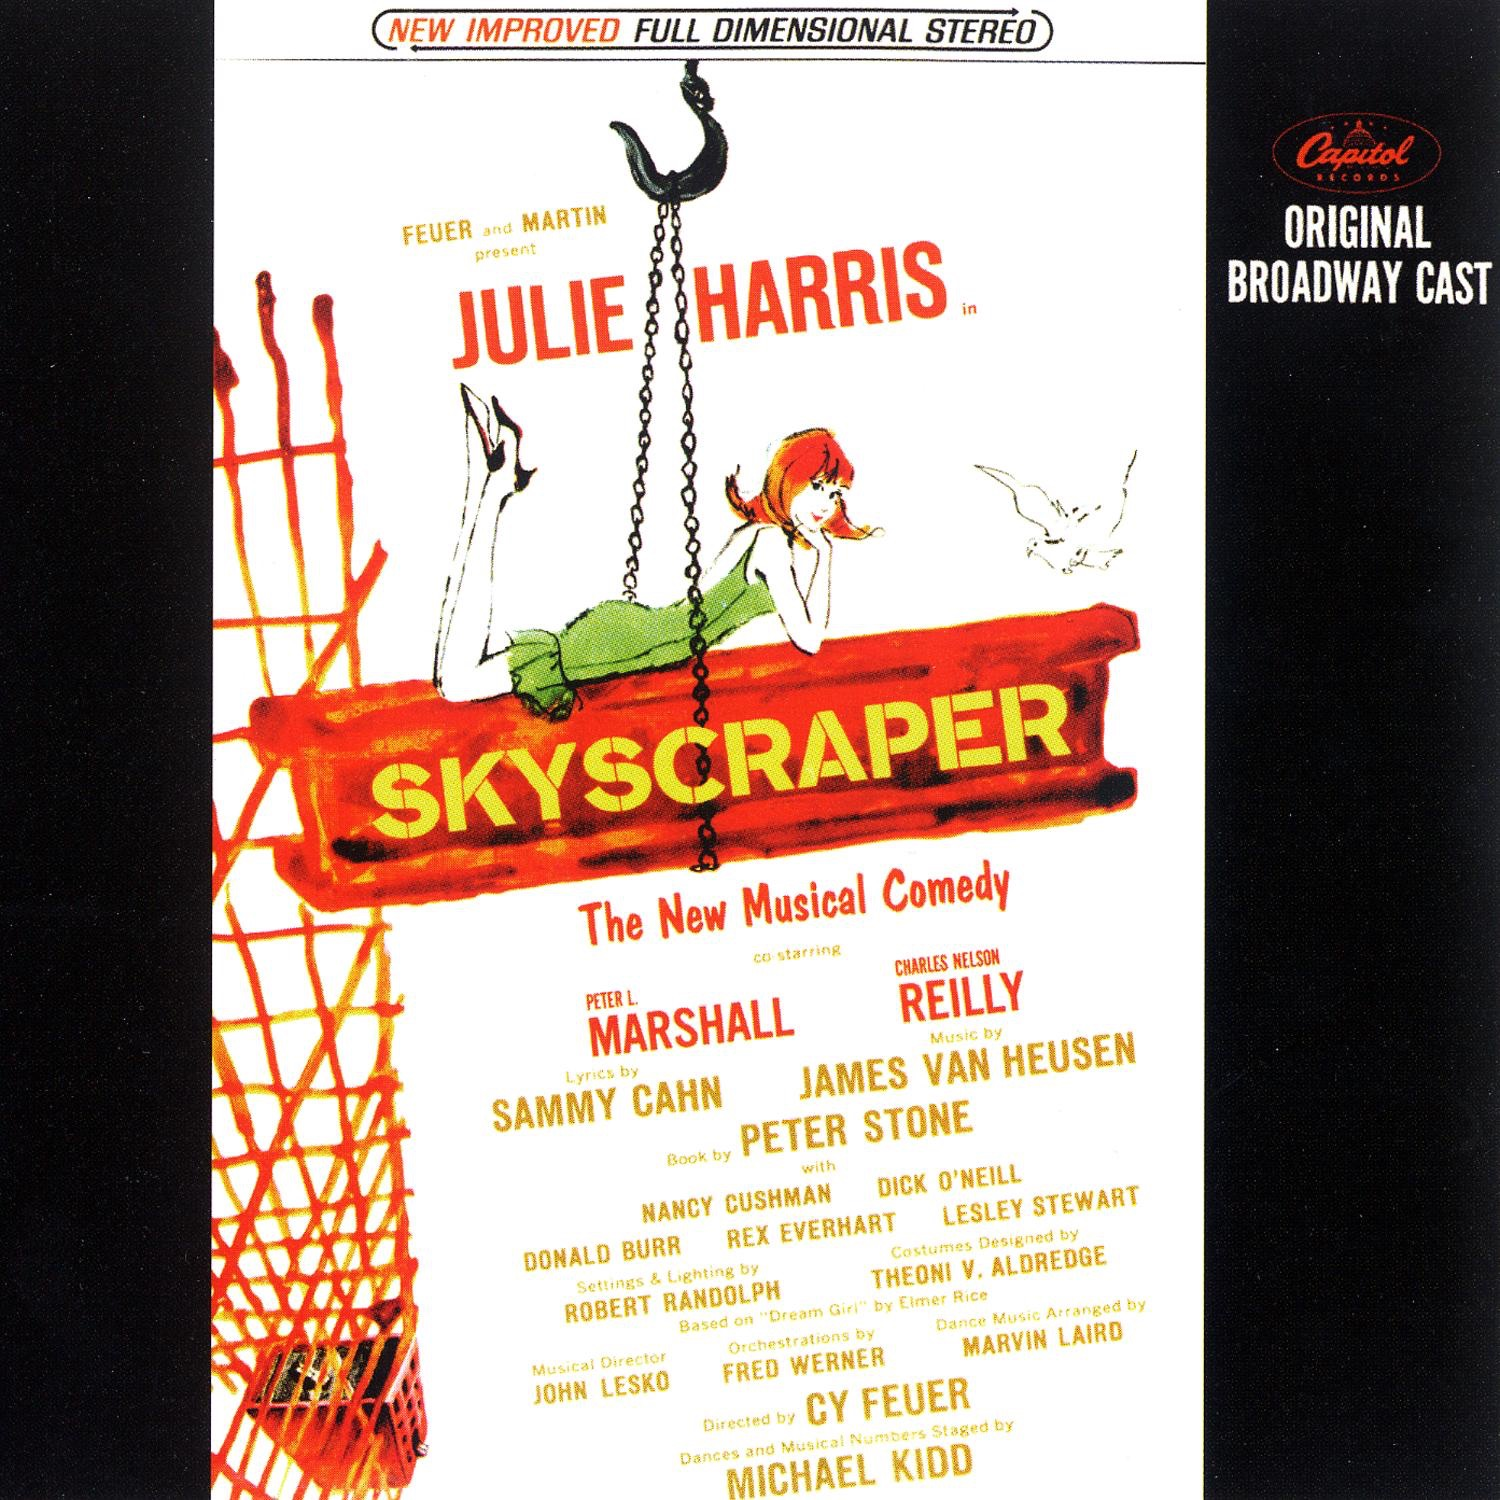 Skyscraper (Original Broadway Cast)